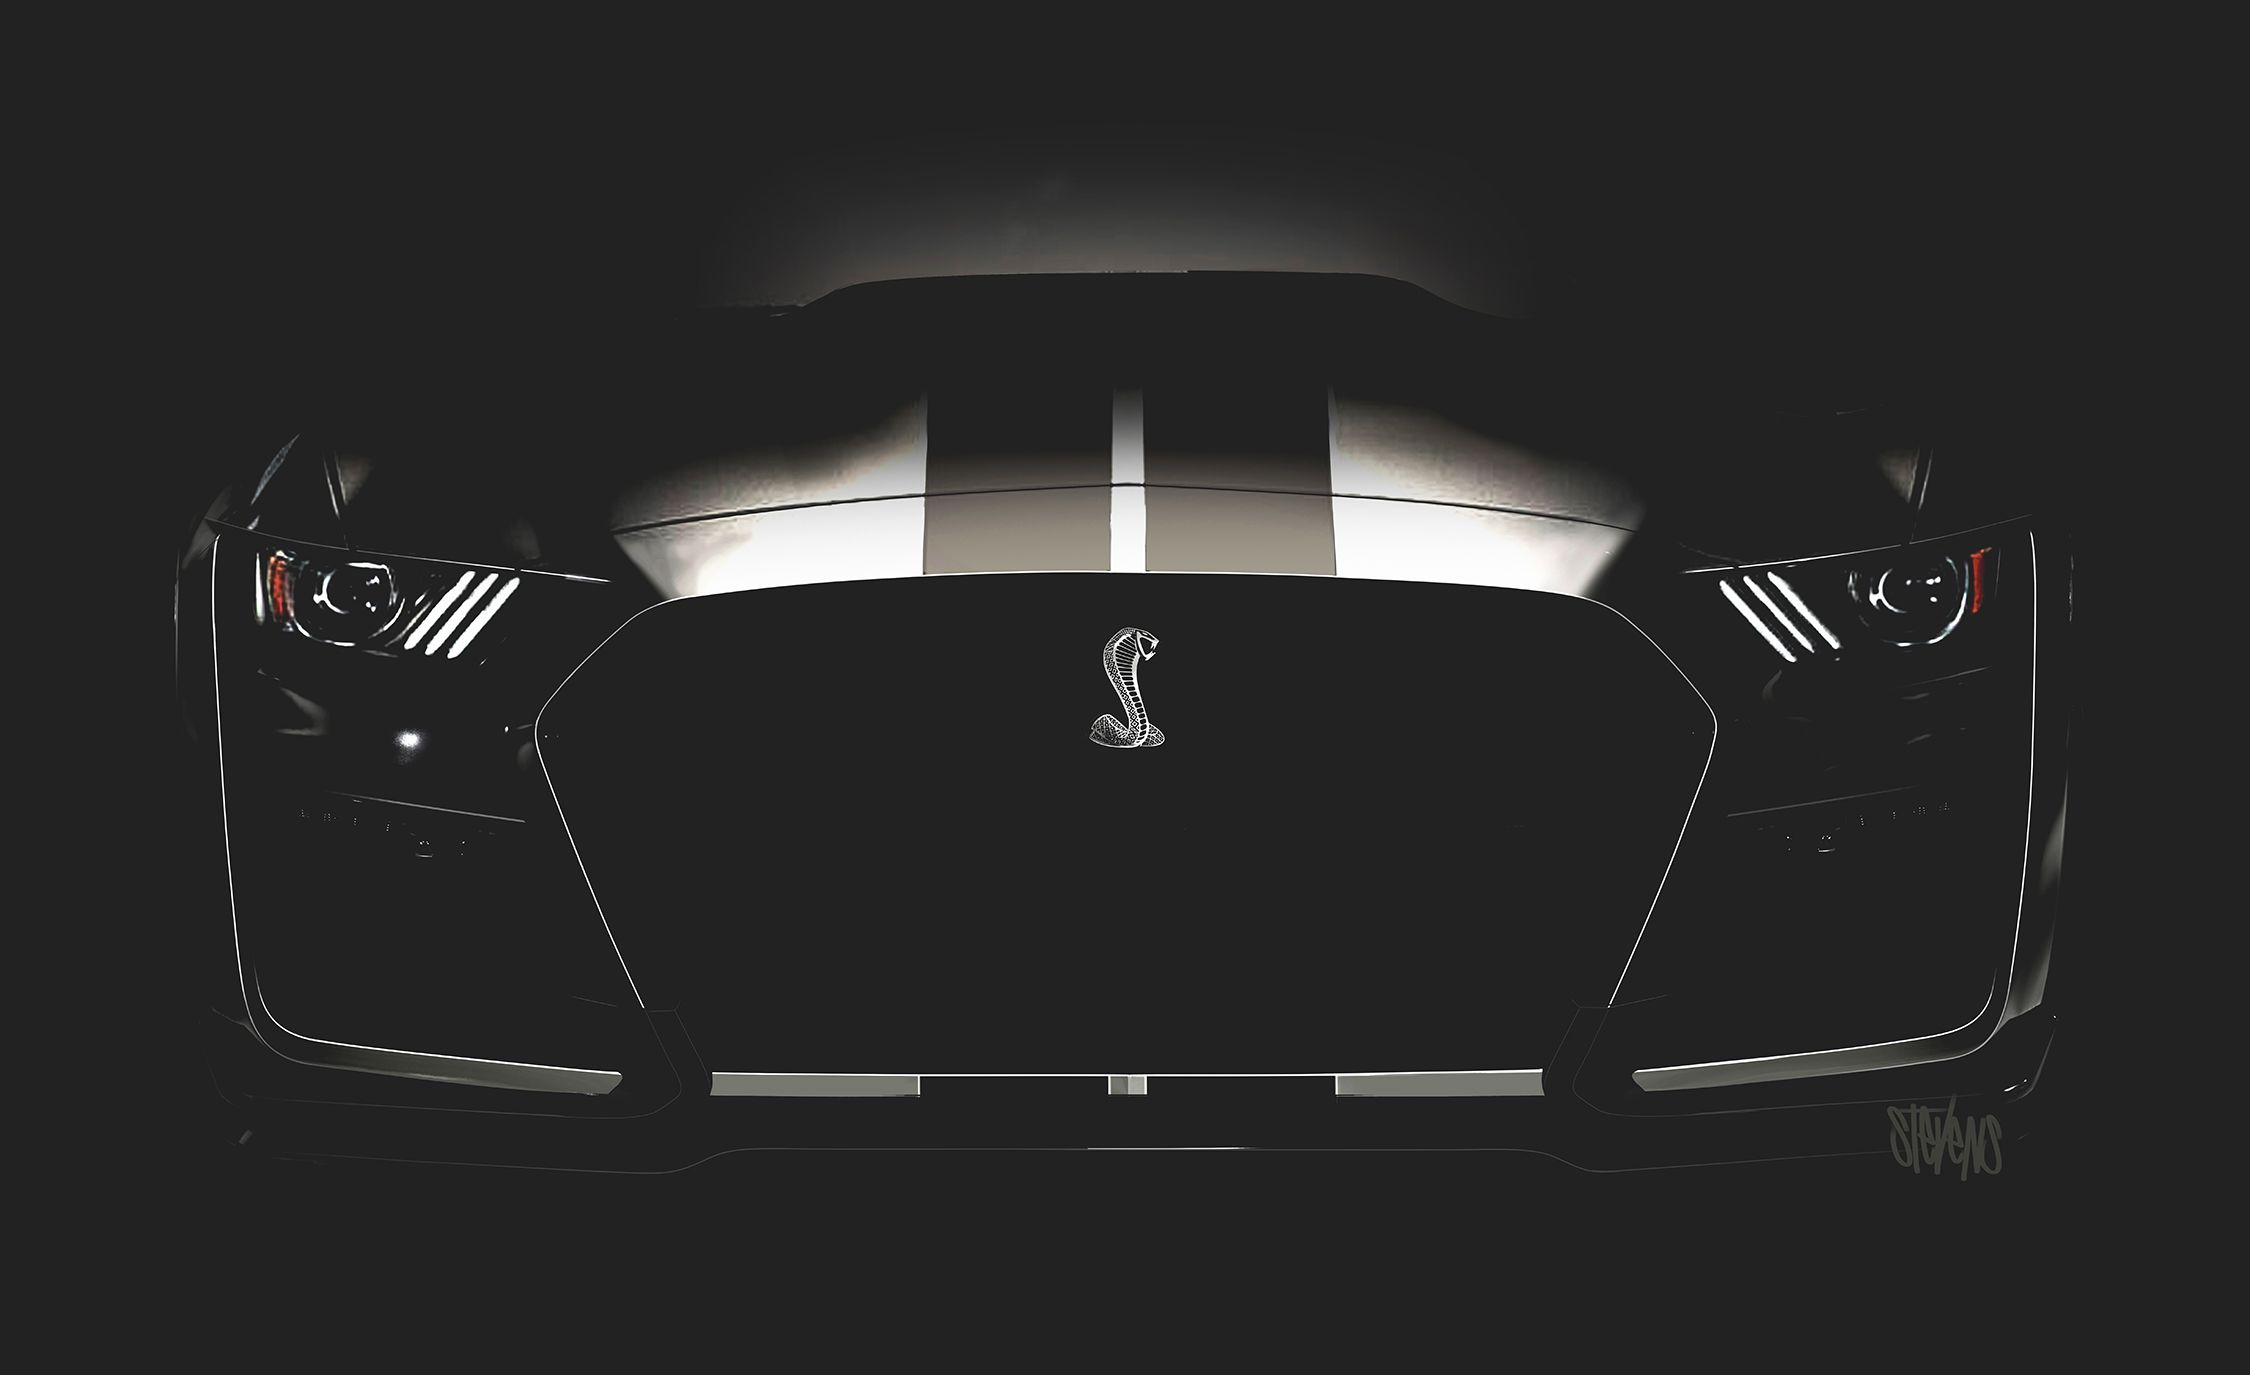 2020 ford mustang shelby gt500 reviews ford mustang shelby gt500 price photos and specs car and driver